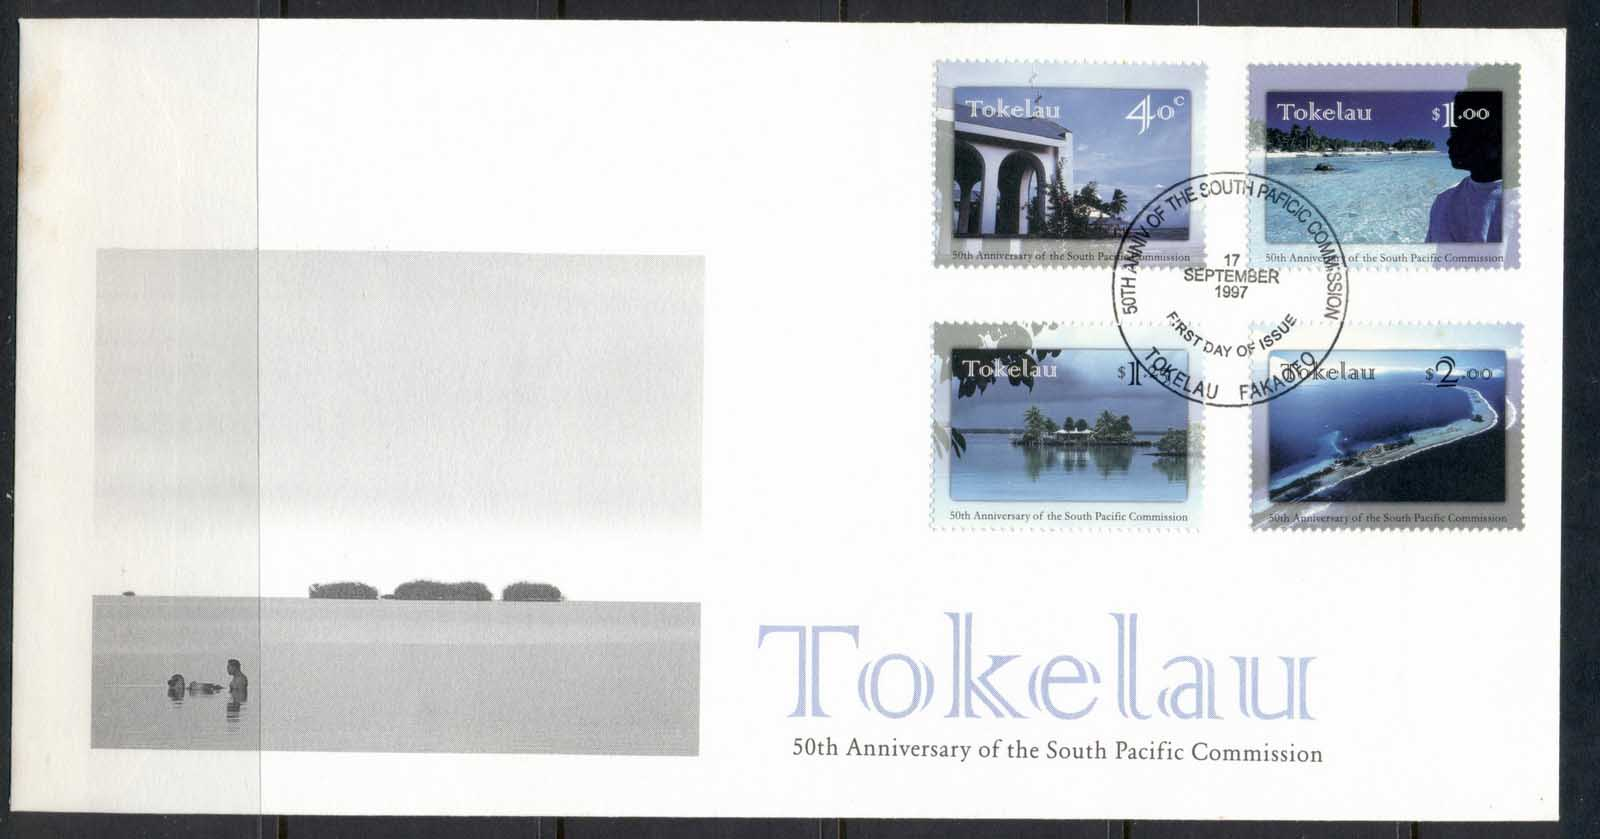 Tokelau 1997 South Pacific Commission FDc